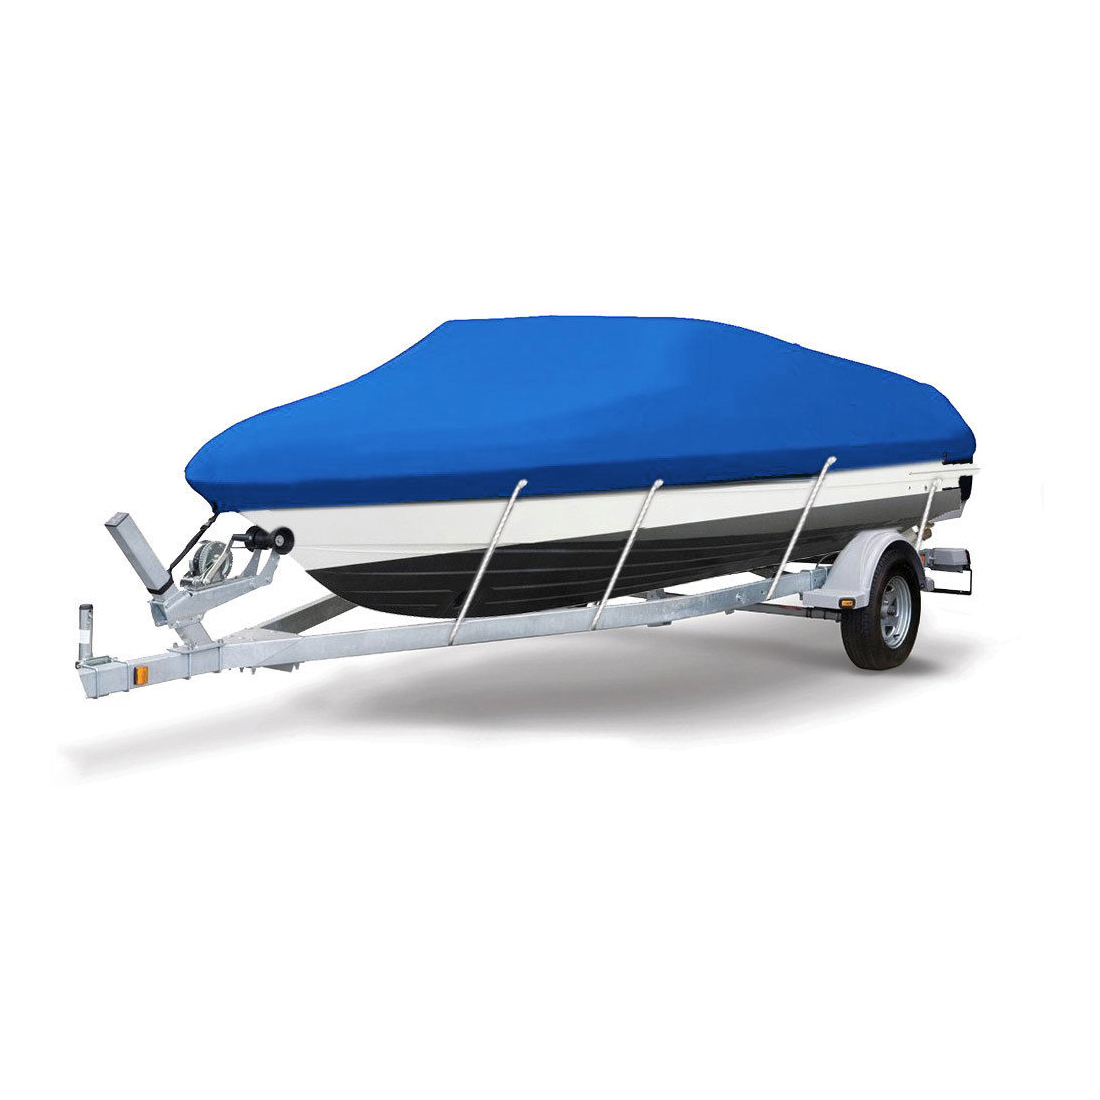 Blue 210D Waterproof Trailerable Boat Cover Fit 14-16ft Beam 90